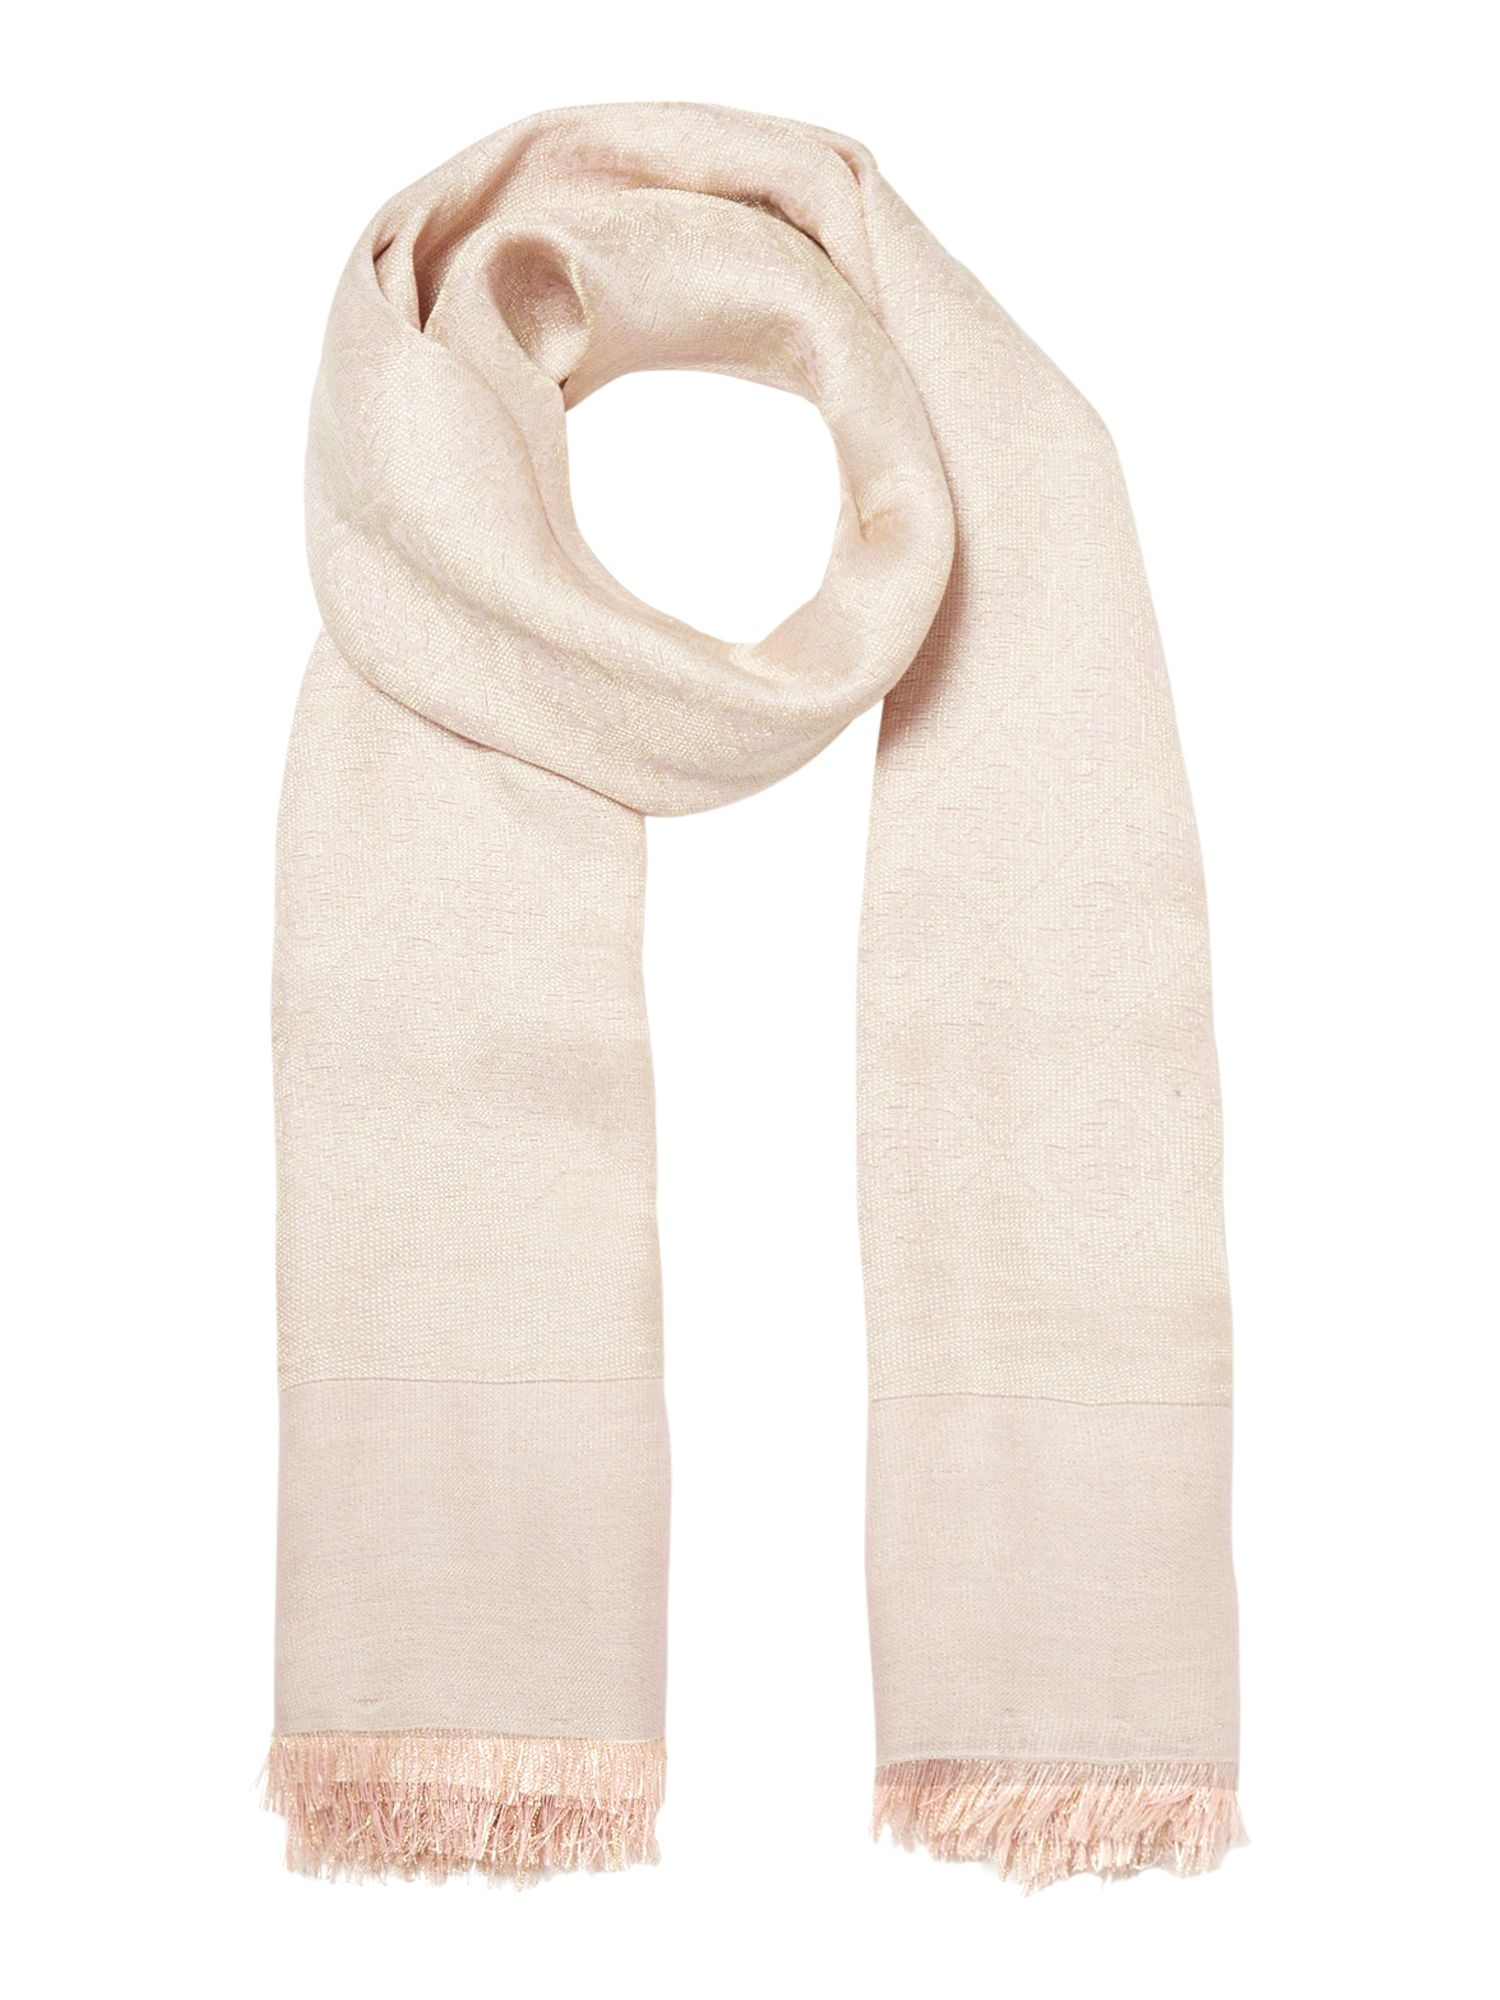 Guess All over logo not coordinated scarf, Rose